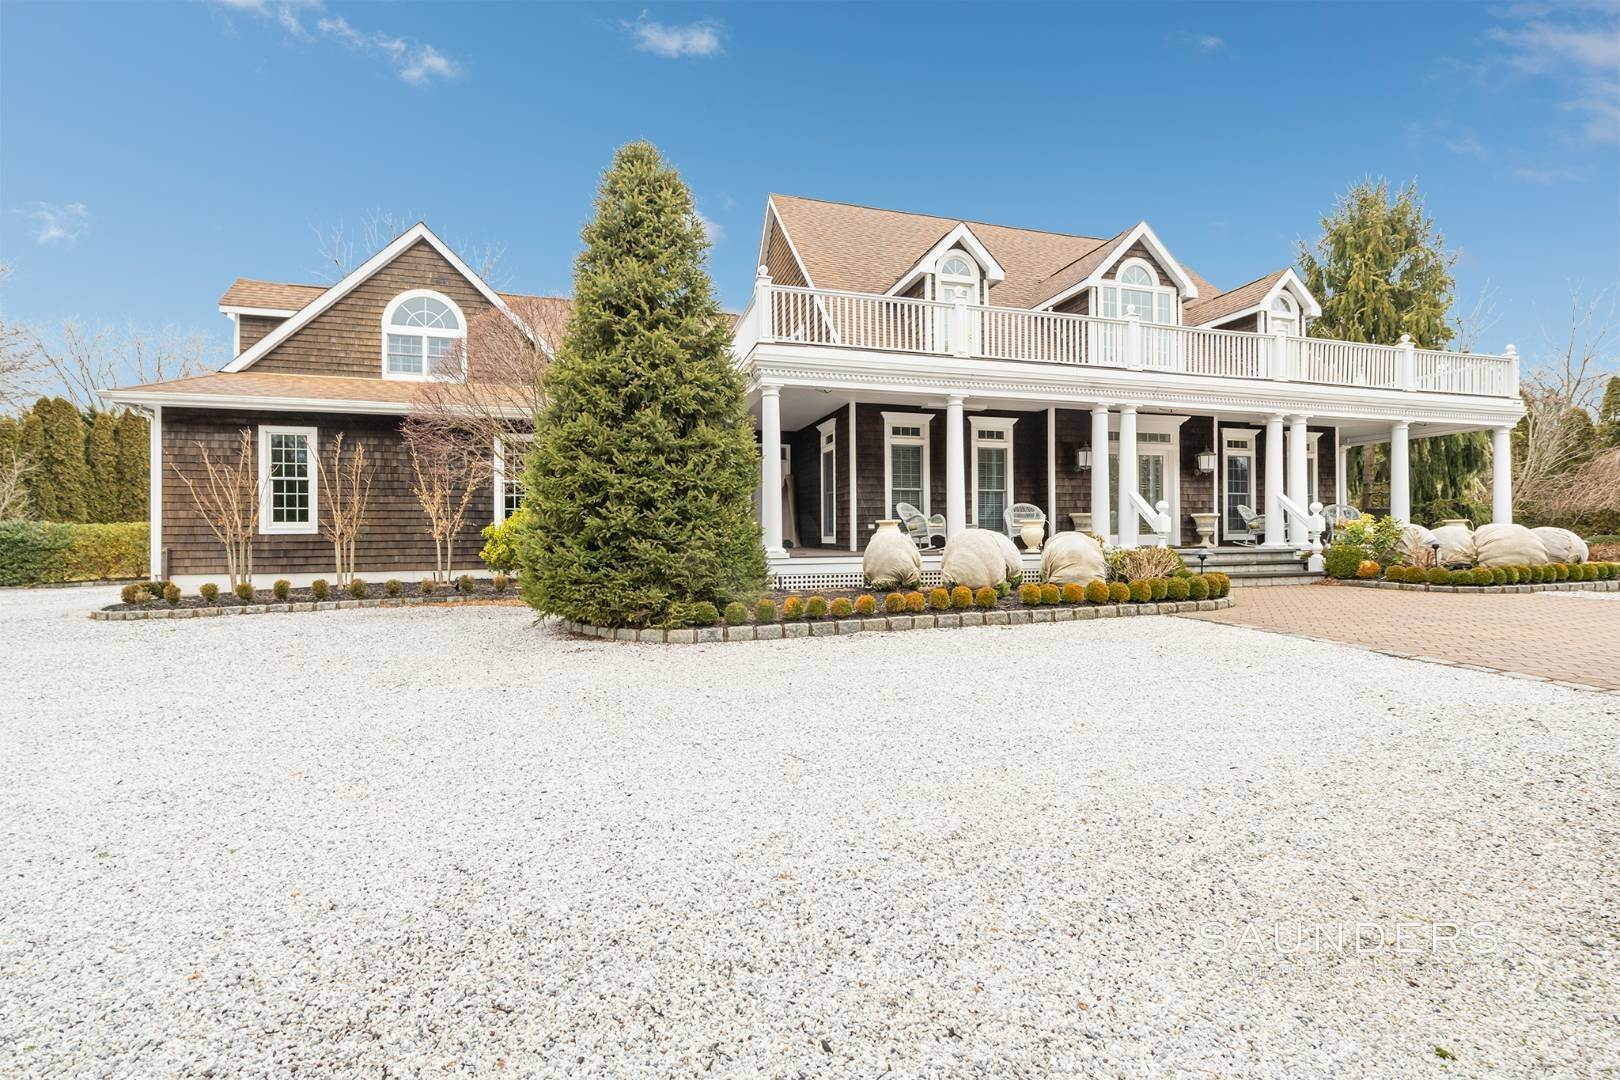 Single Family Homes at Spacious And Elegant Bridgehampton With Pool 77 Bridgehampton Sag Harbor Turnpike, Bridgehampton, Southampton Town, NY 11932